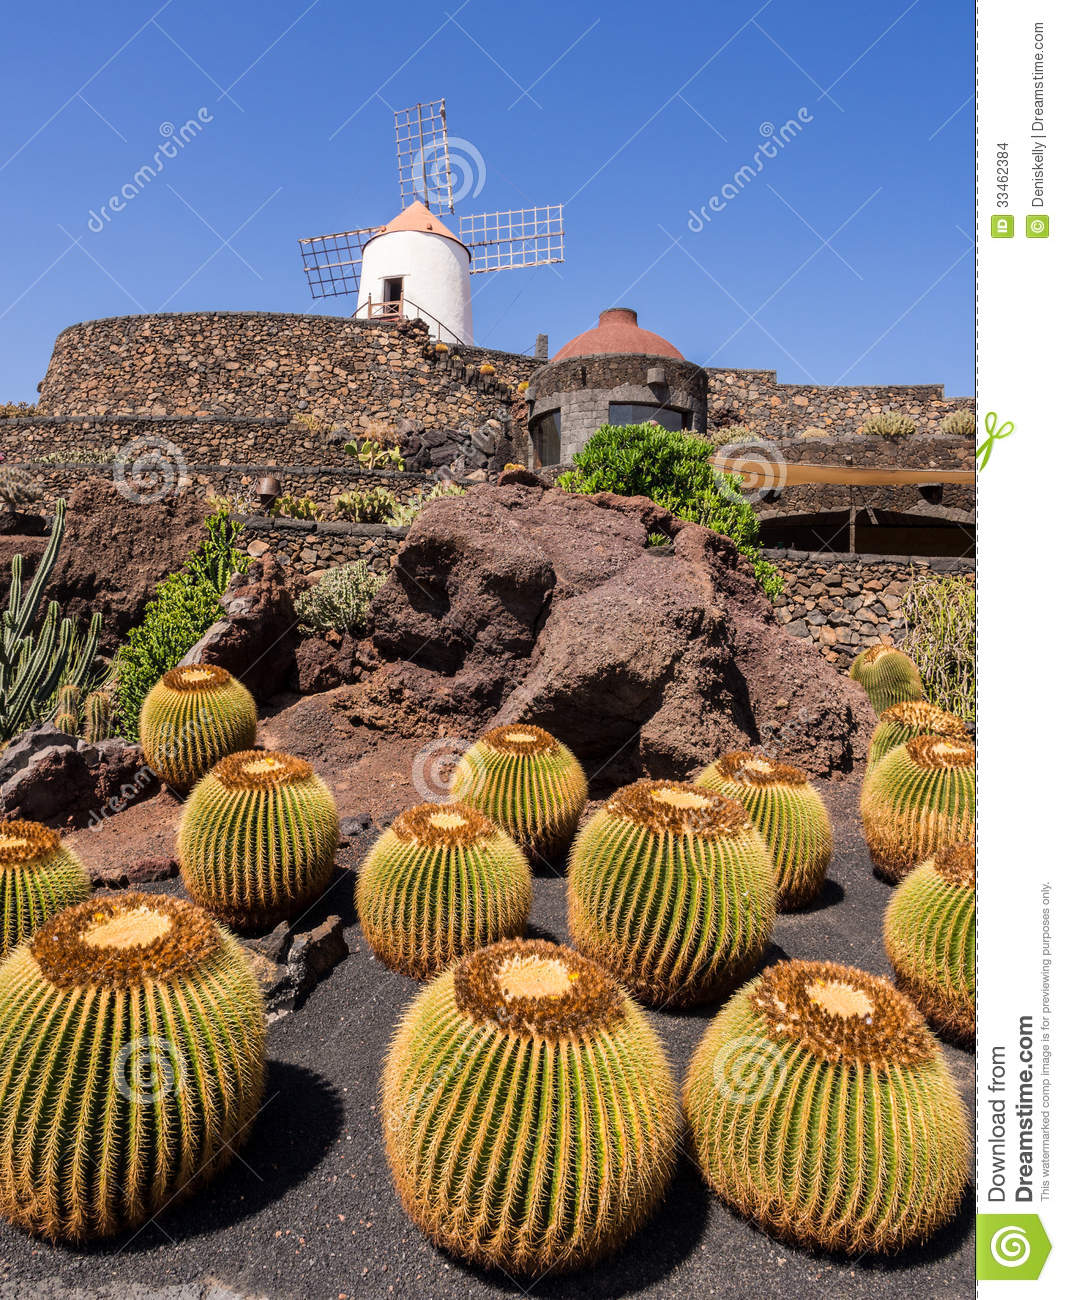 jardin de cactus lanzarote les canaries images stock image 33462384. Black Bedroom Furniture Sets. Home Design Ideas